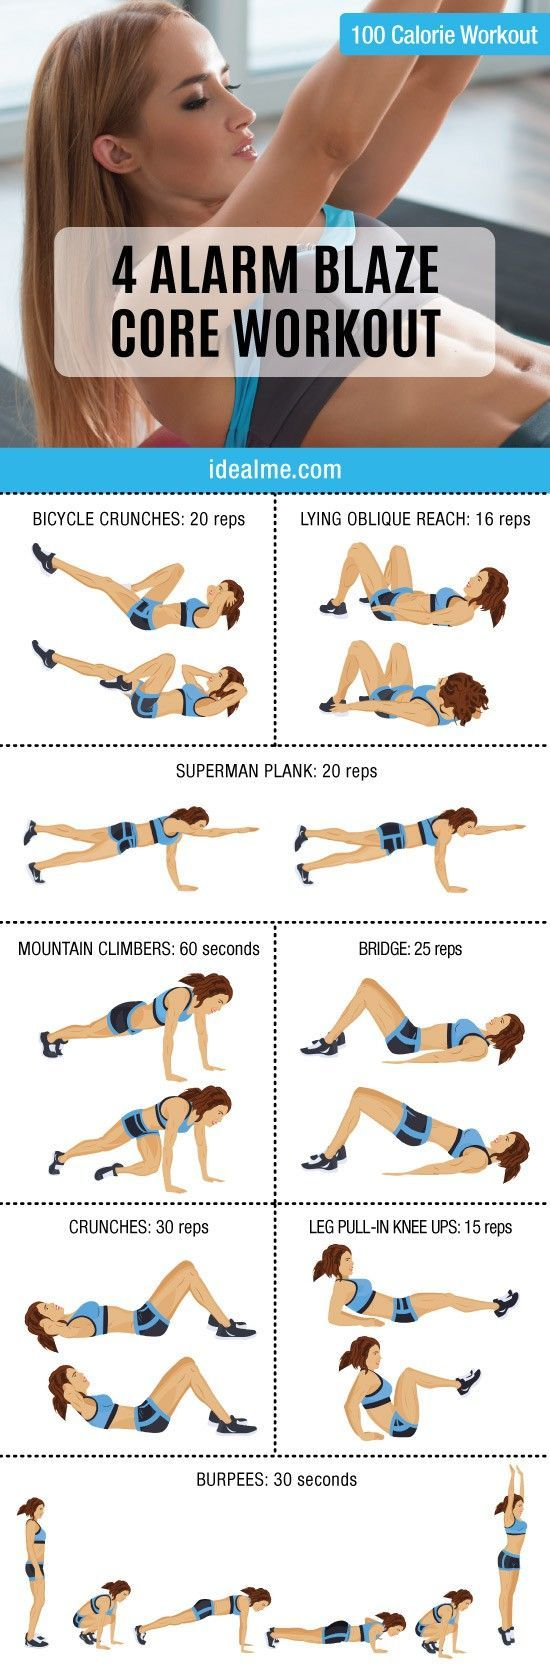 5 Core Workouts from Pinterest, pinterest, pinterest workouts, core workouts, core